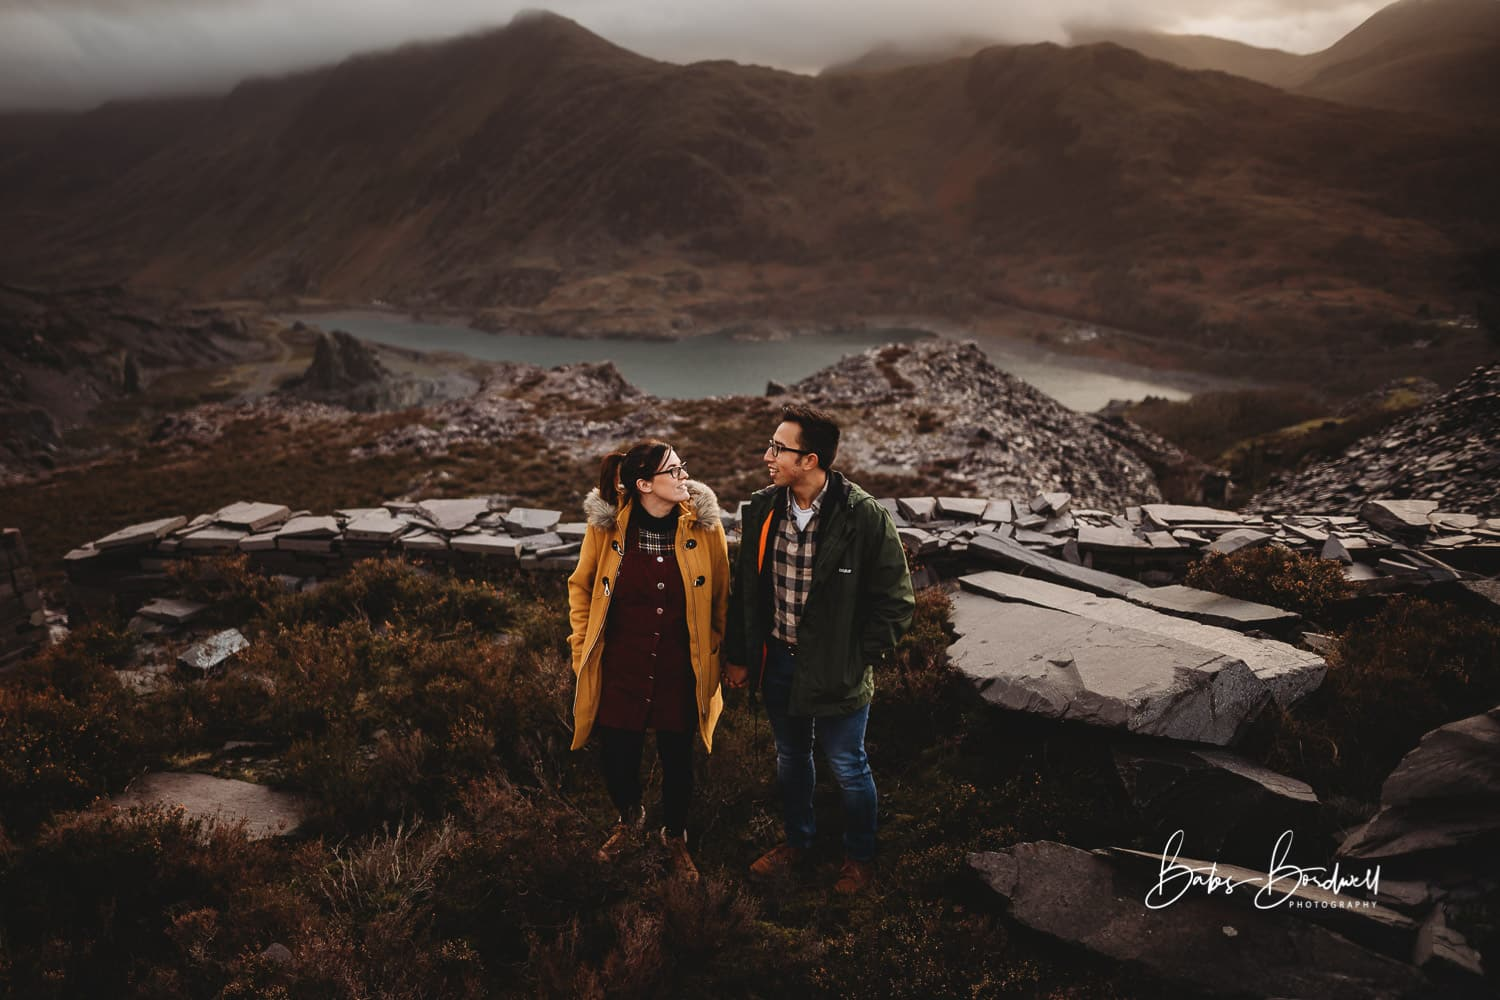 North Wales Wedding Photographer - bride and groom to be during pre-wedding shoot at Llanberis against mountain backdrop